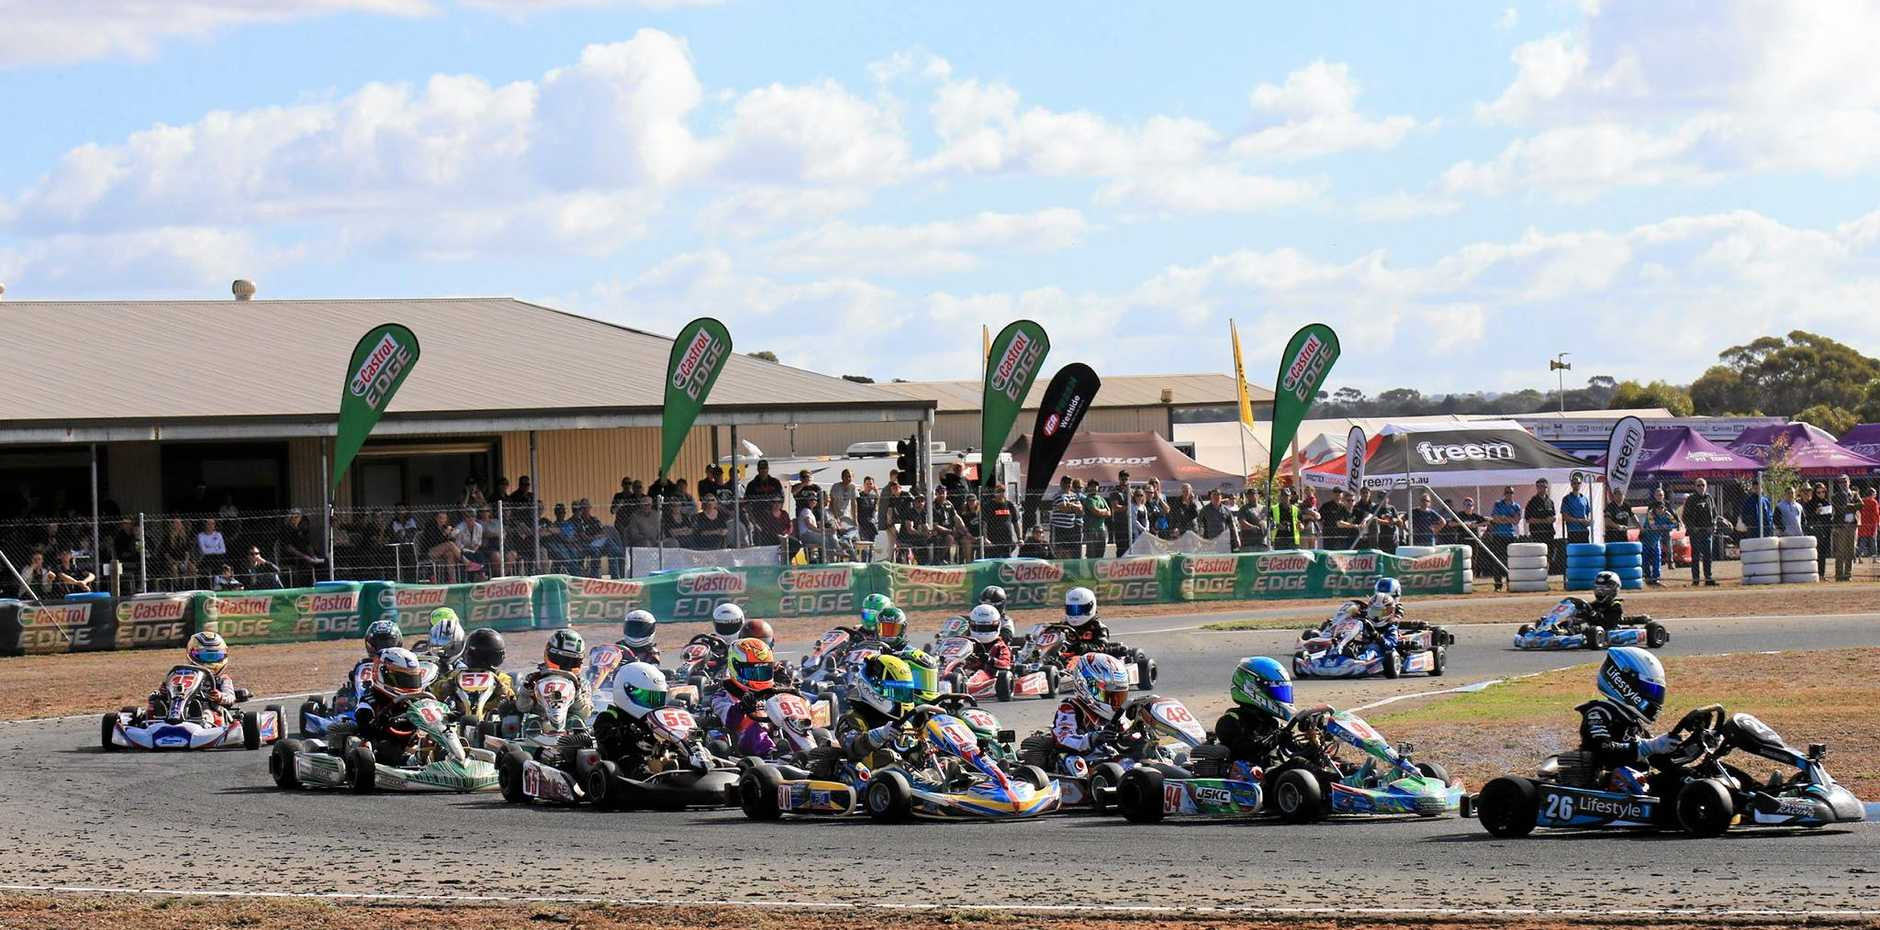 The start of a previous round of the Australian Kart Championship.